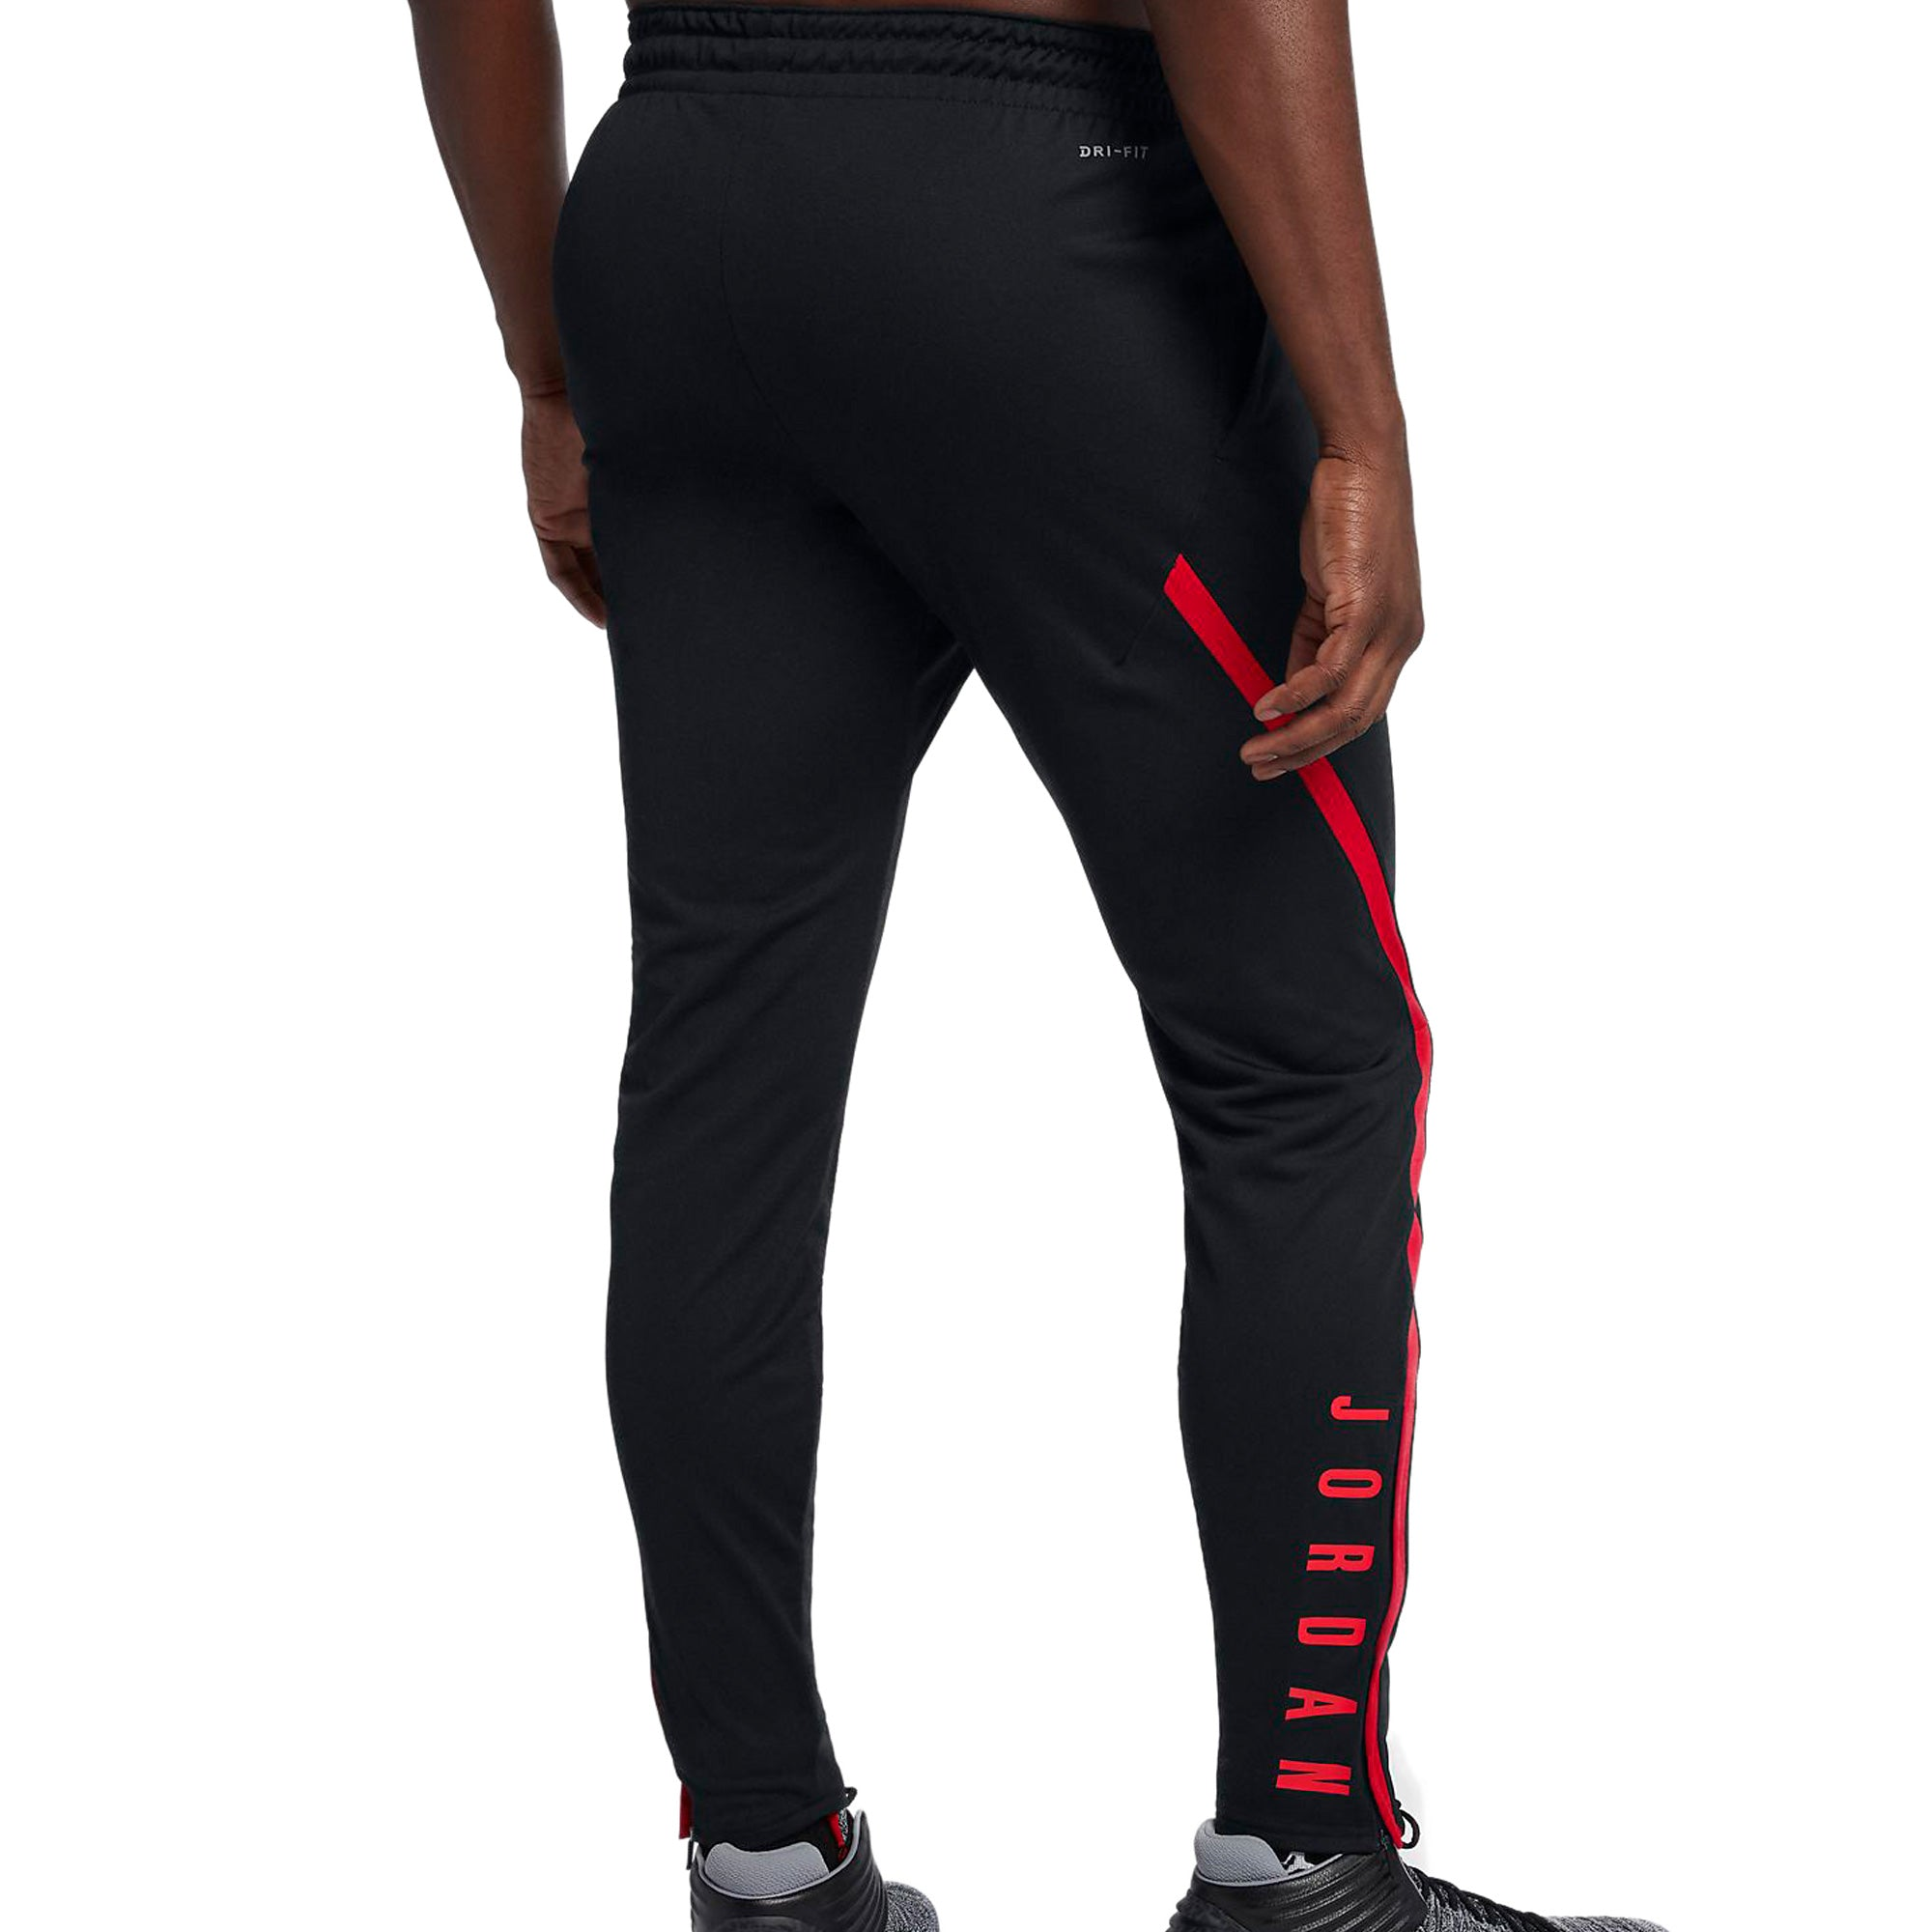 a6f2d05d40b68e Air Jordan Dri-Fit 23 Alpha Basketball Pants  889711-011